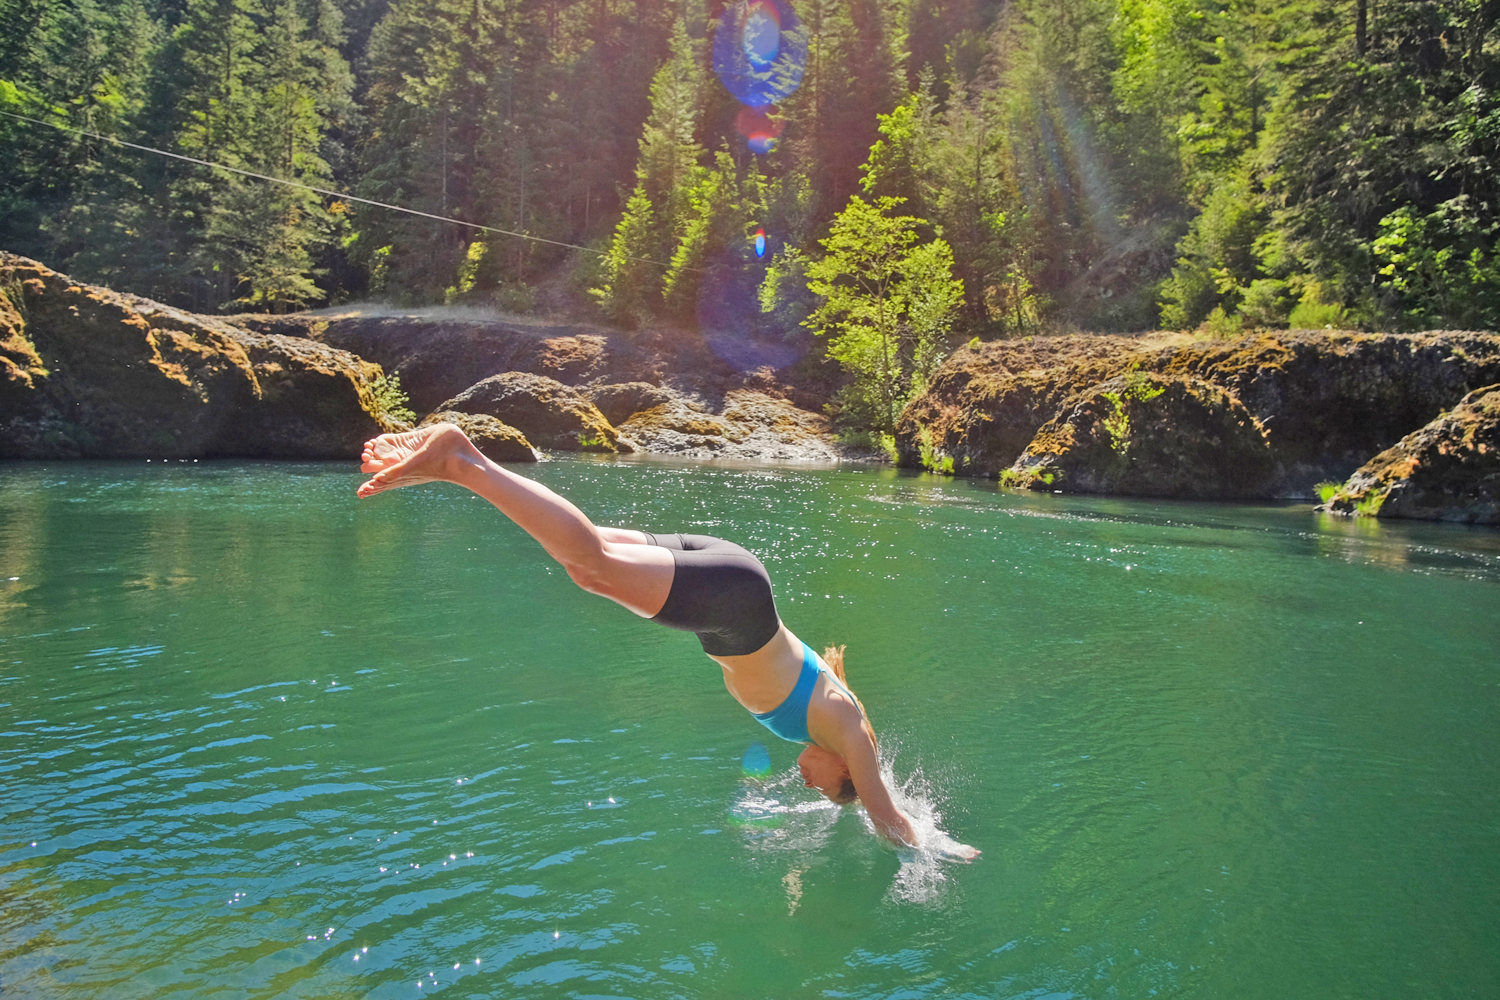 The Narrows swimming hole in the Clackamas River